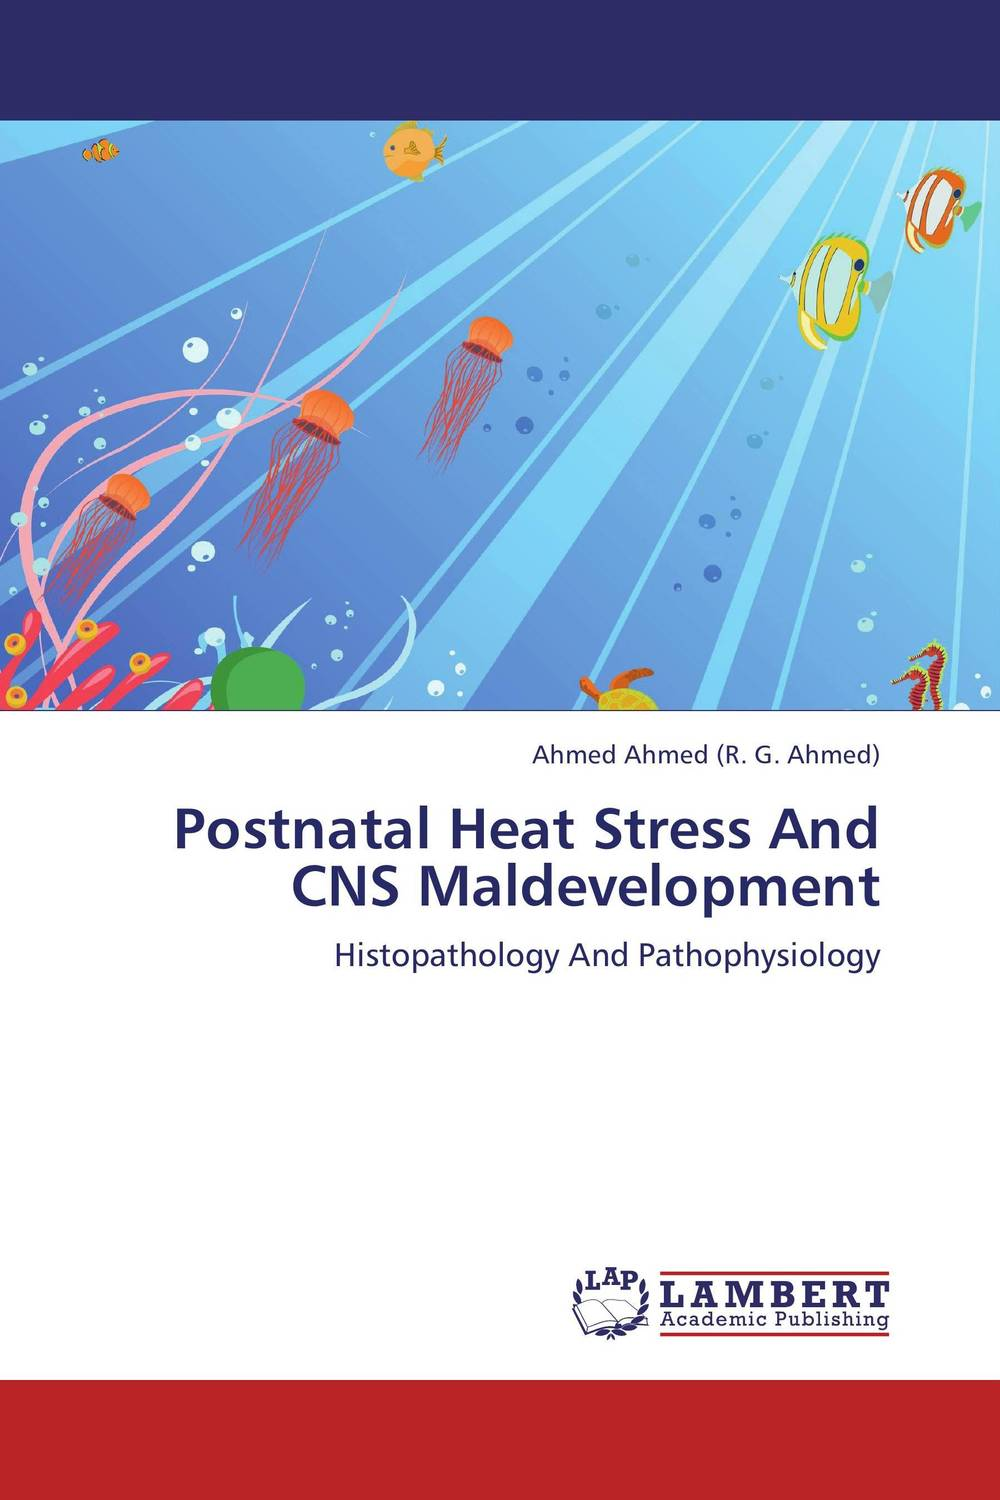 Postnatal Heat Stress And CNS Maldevelopment